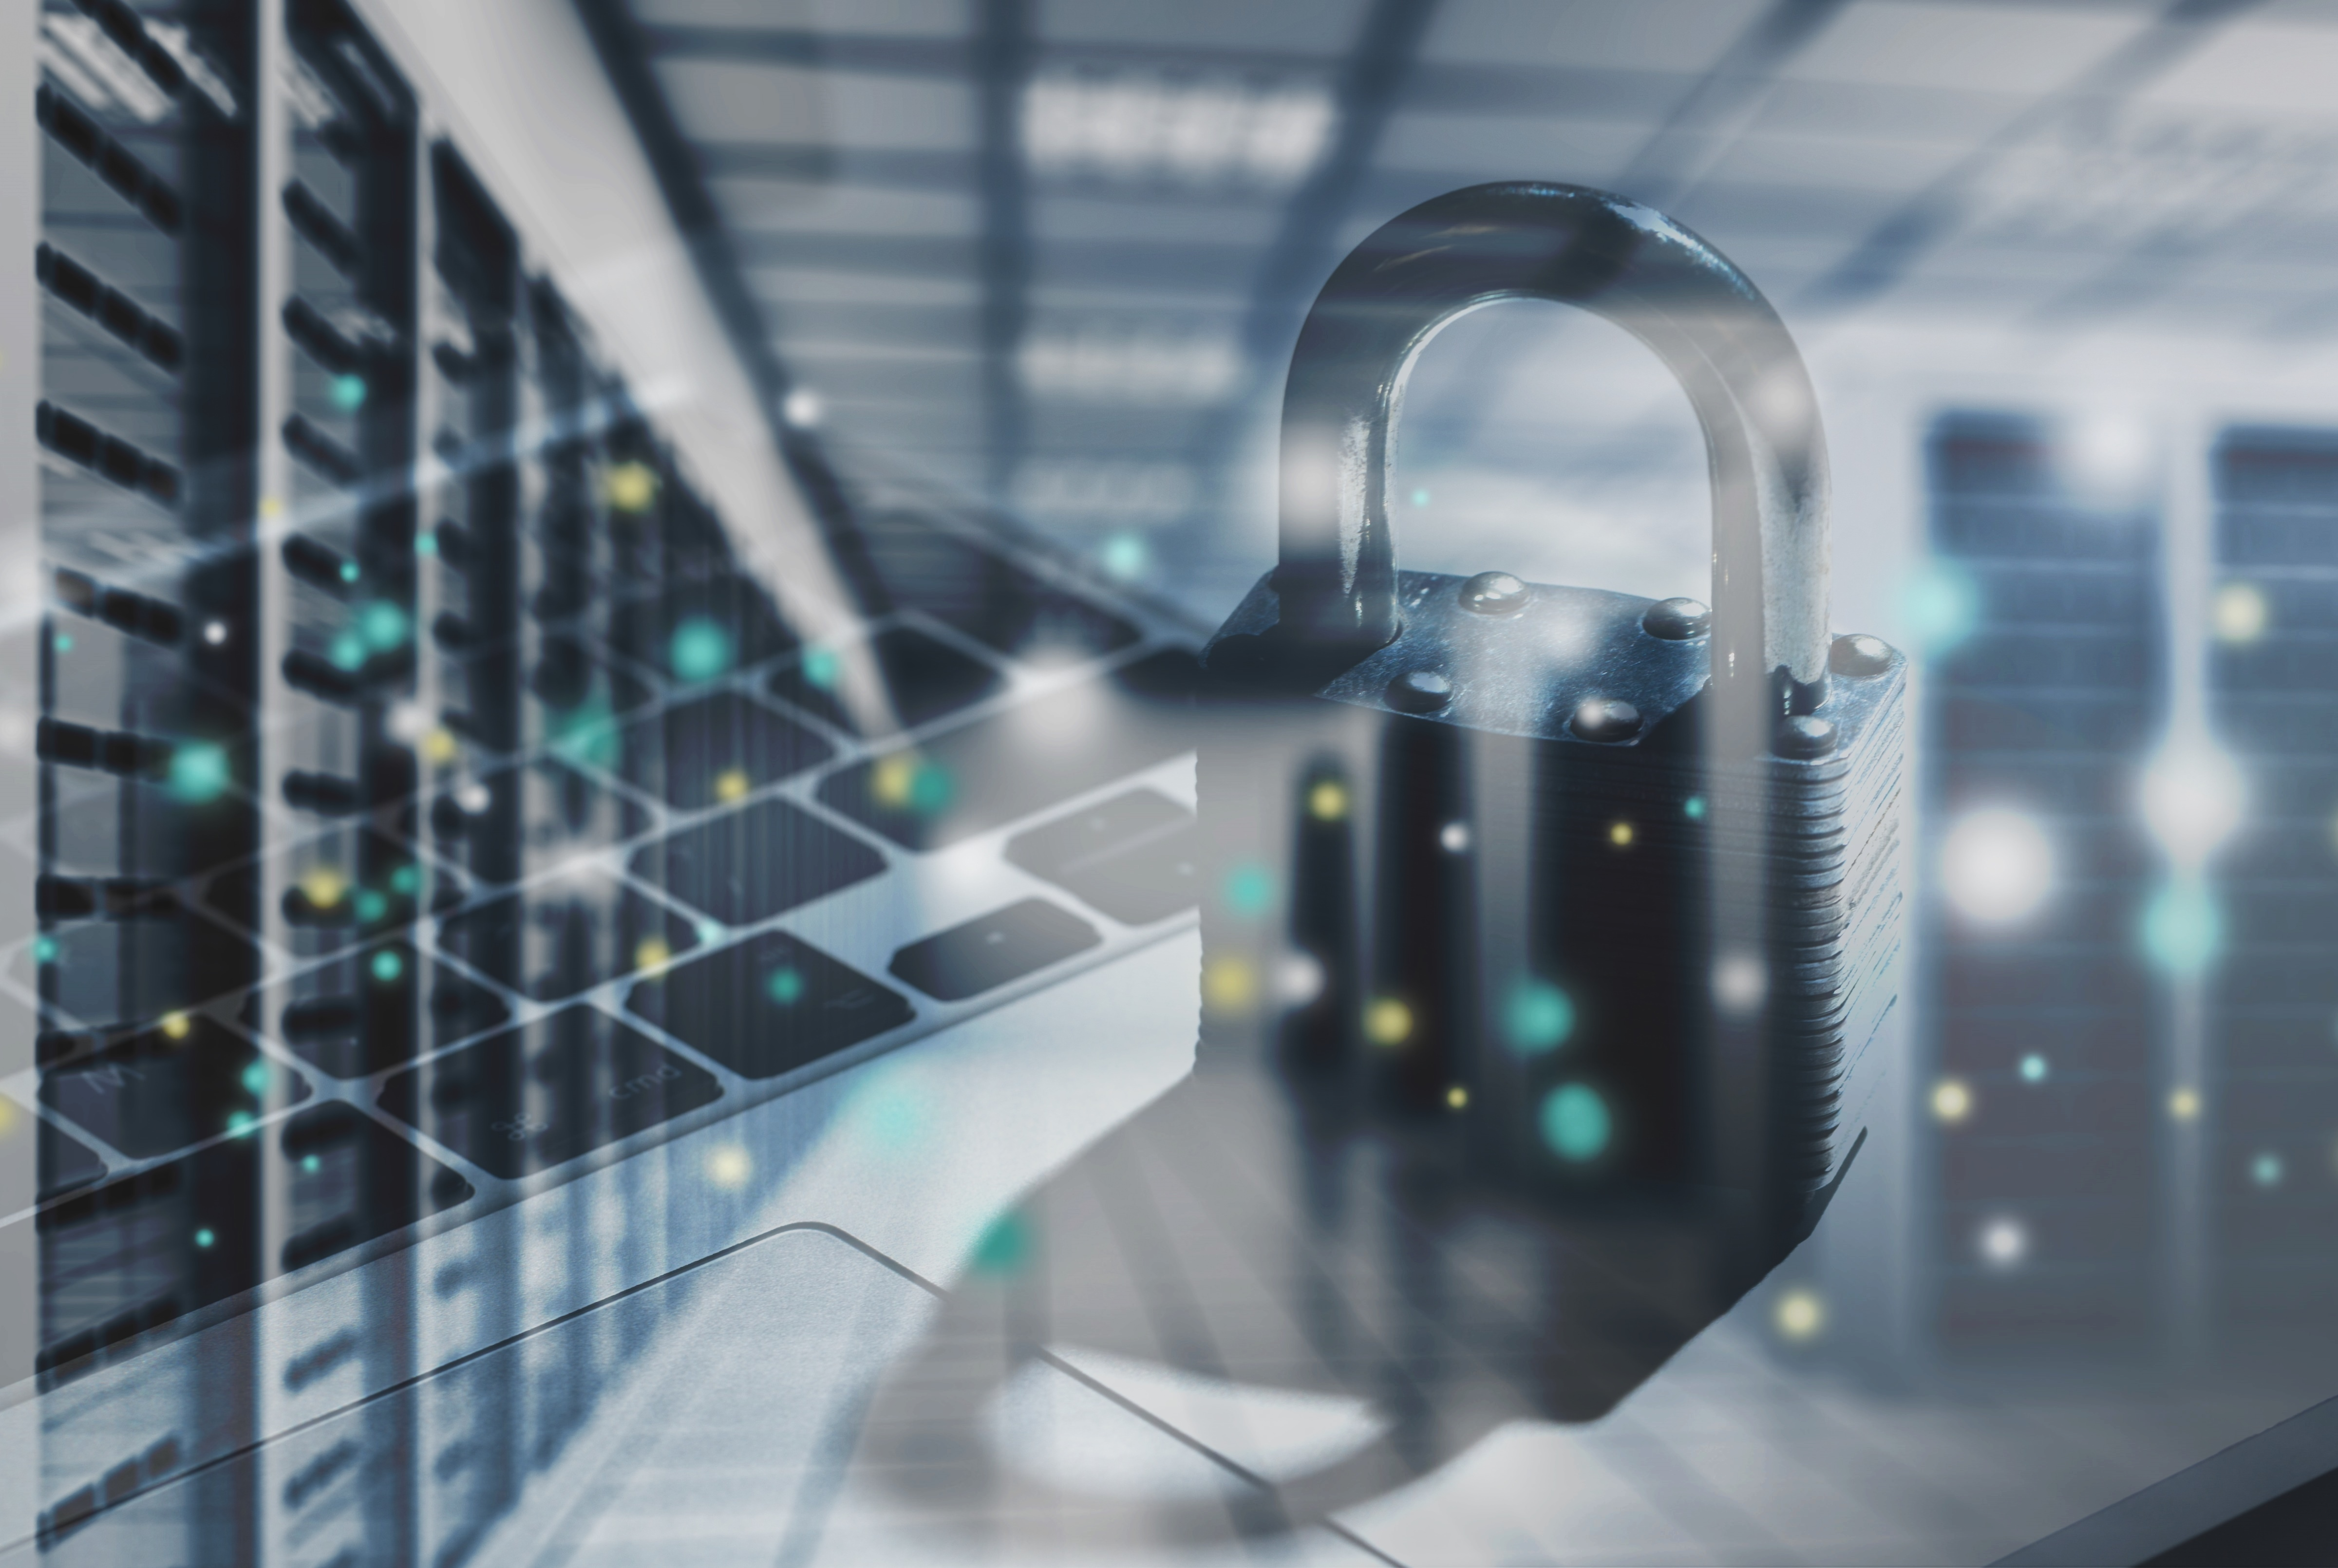 Samsung SDS Selects 7 Cyber Security Trends in 2021